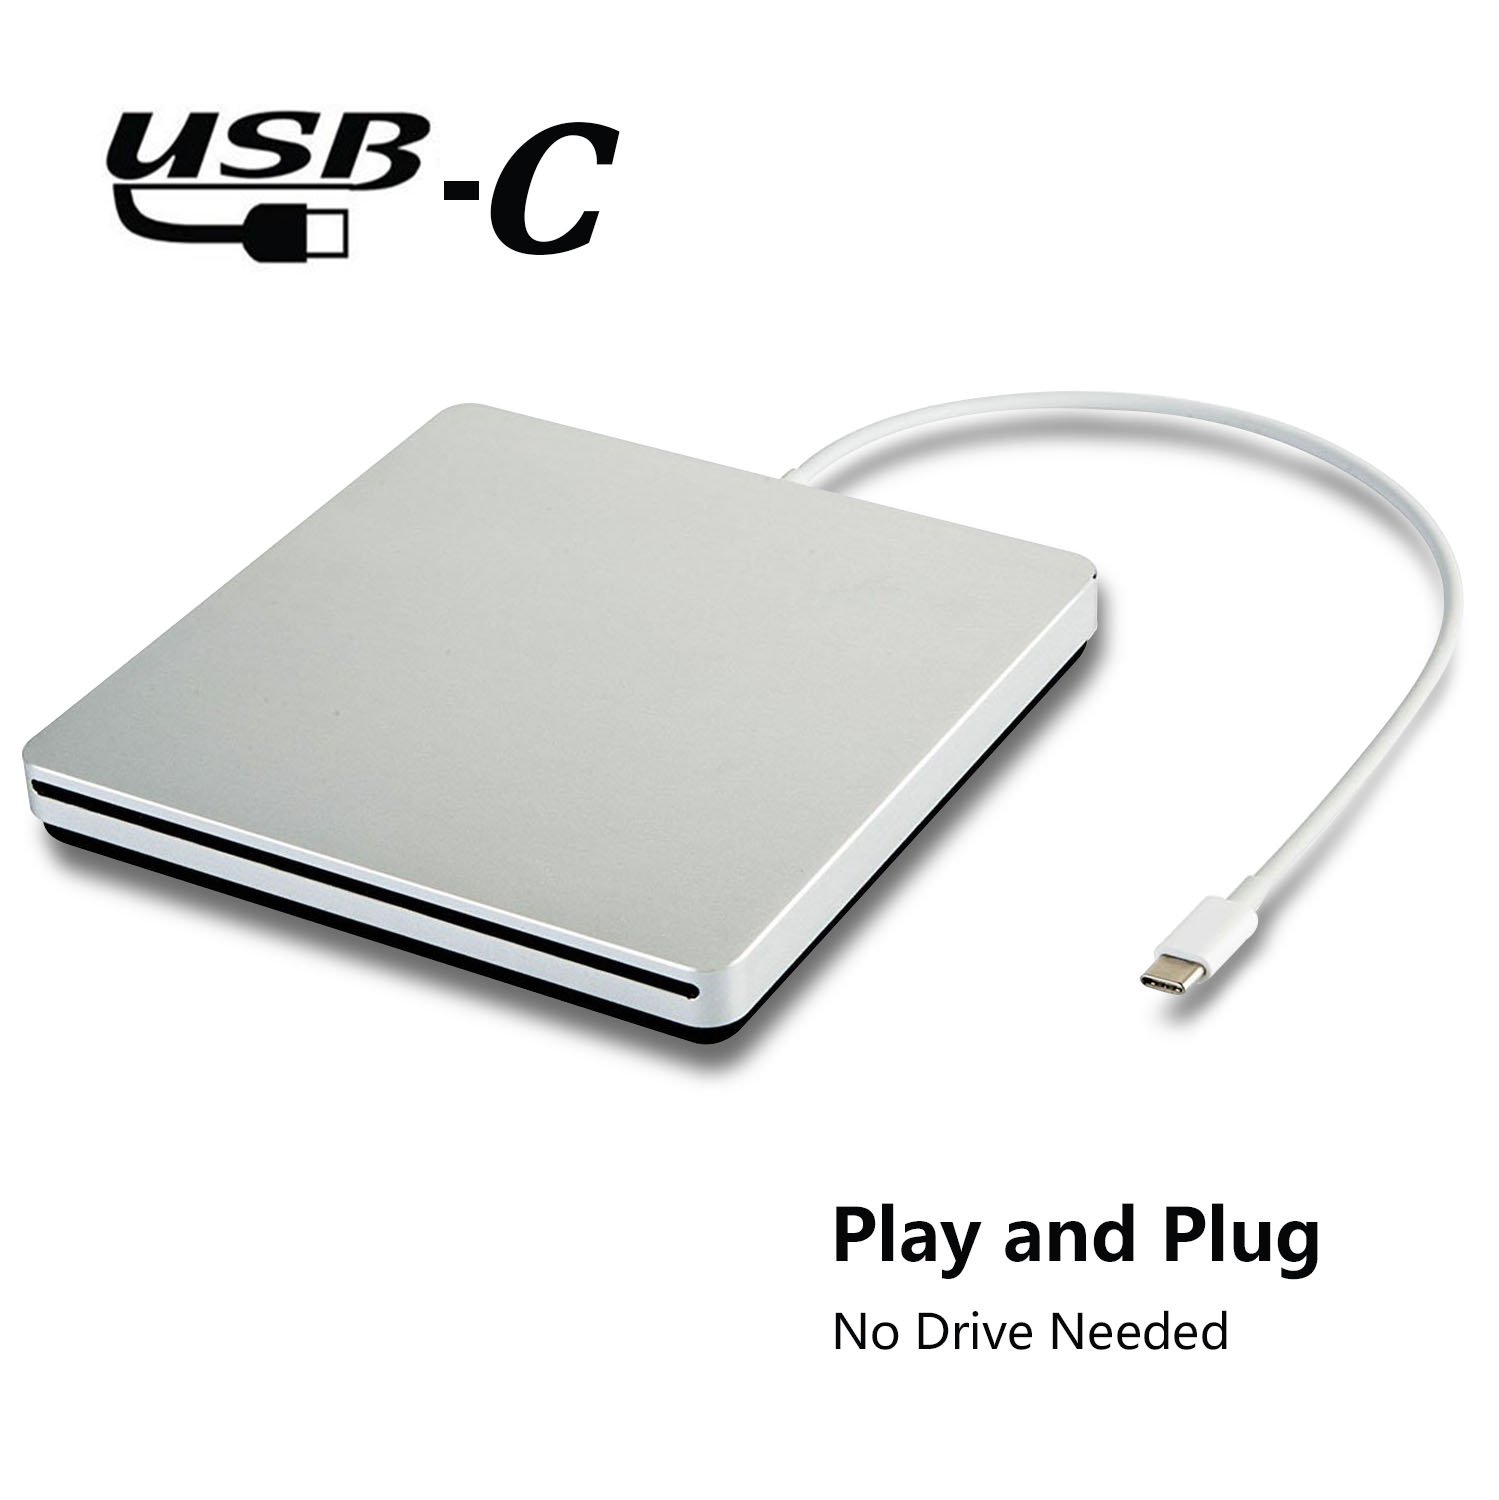 tengertang Type-C Super External Drive,USB Portable External DVD/CD Drive Burner/Reader/Rewriter for The Latest MacBook/MacBook Pro/ASUS/DELL Latitude with USB-C Port (Silver.)